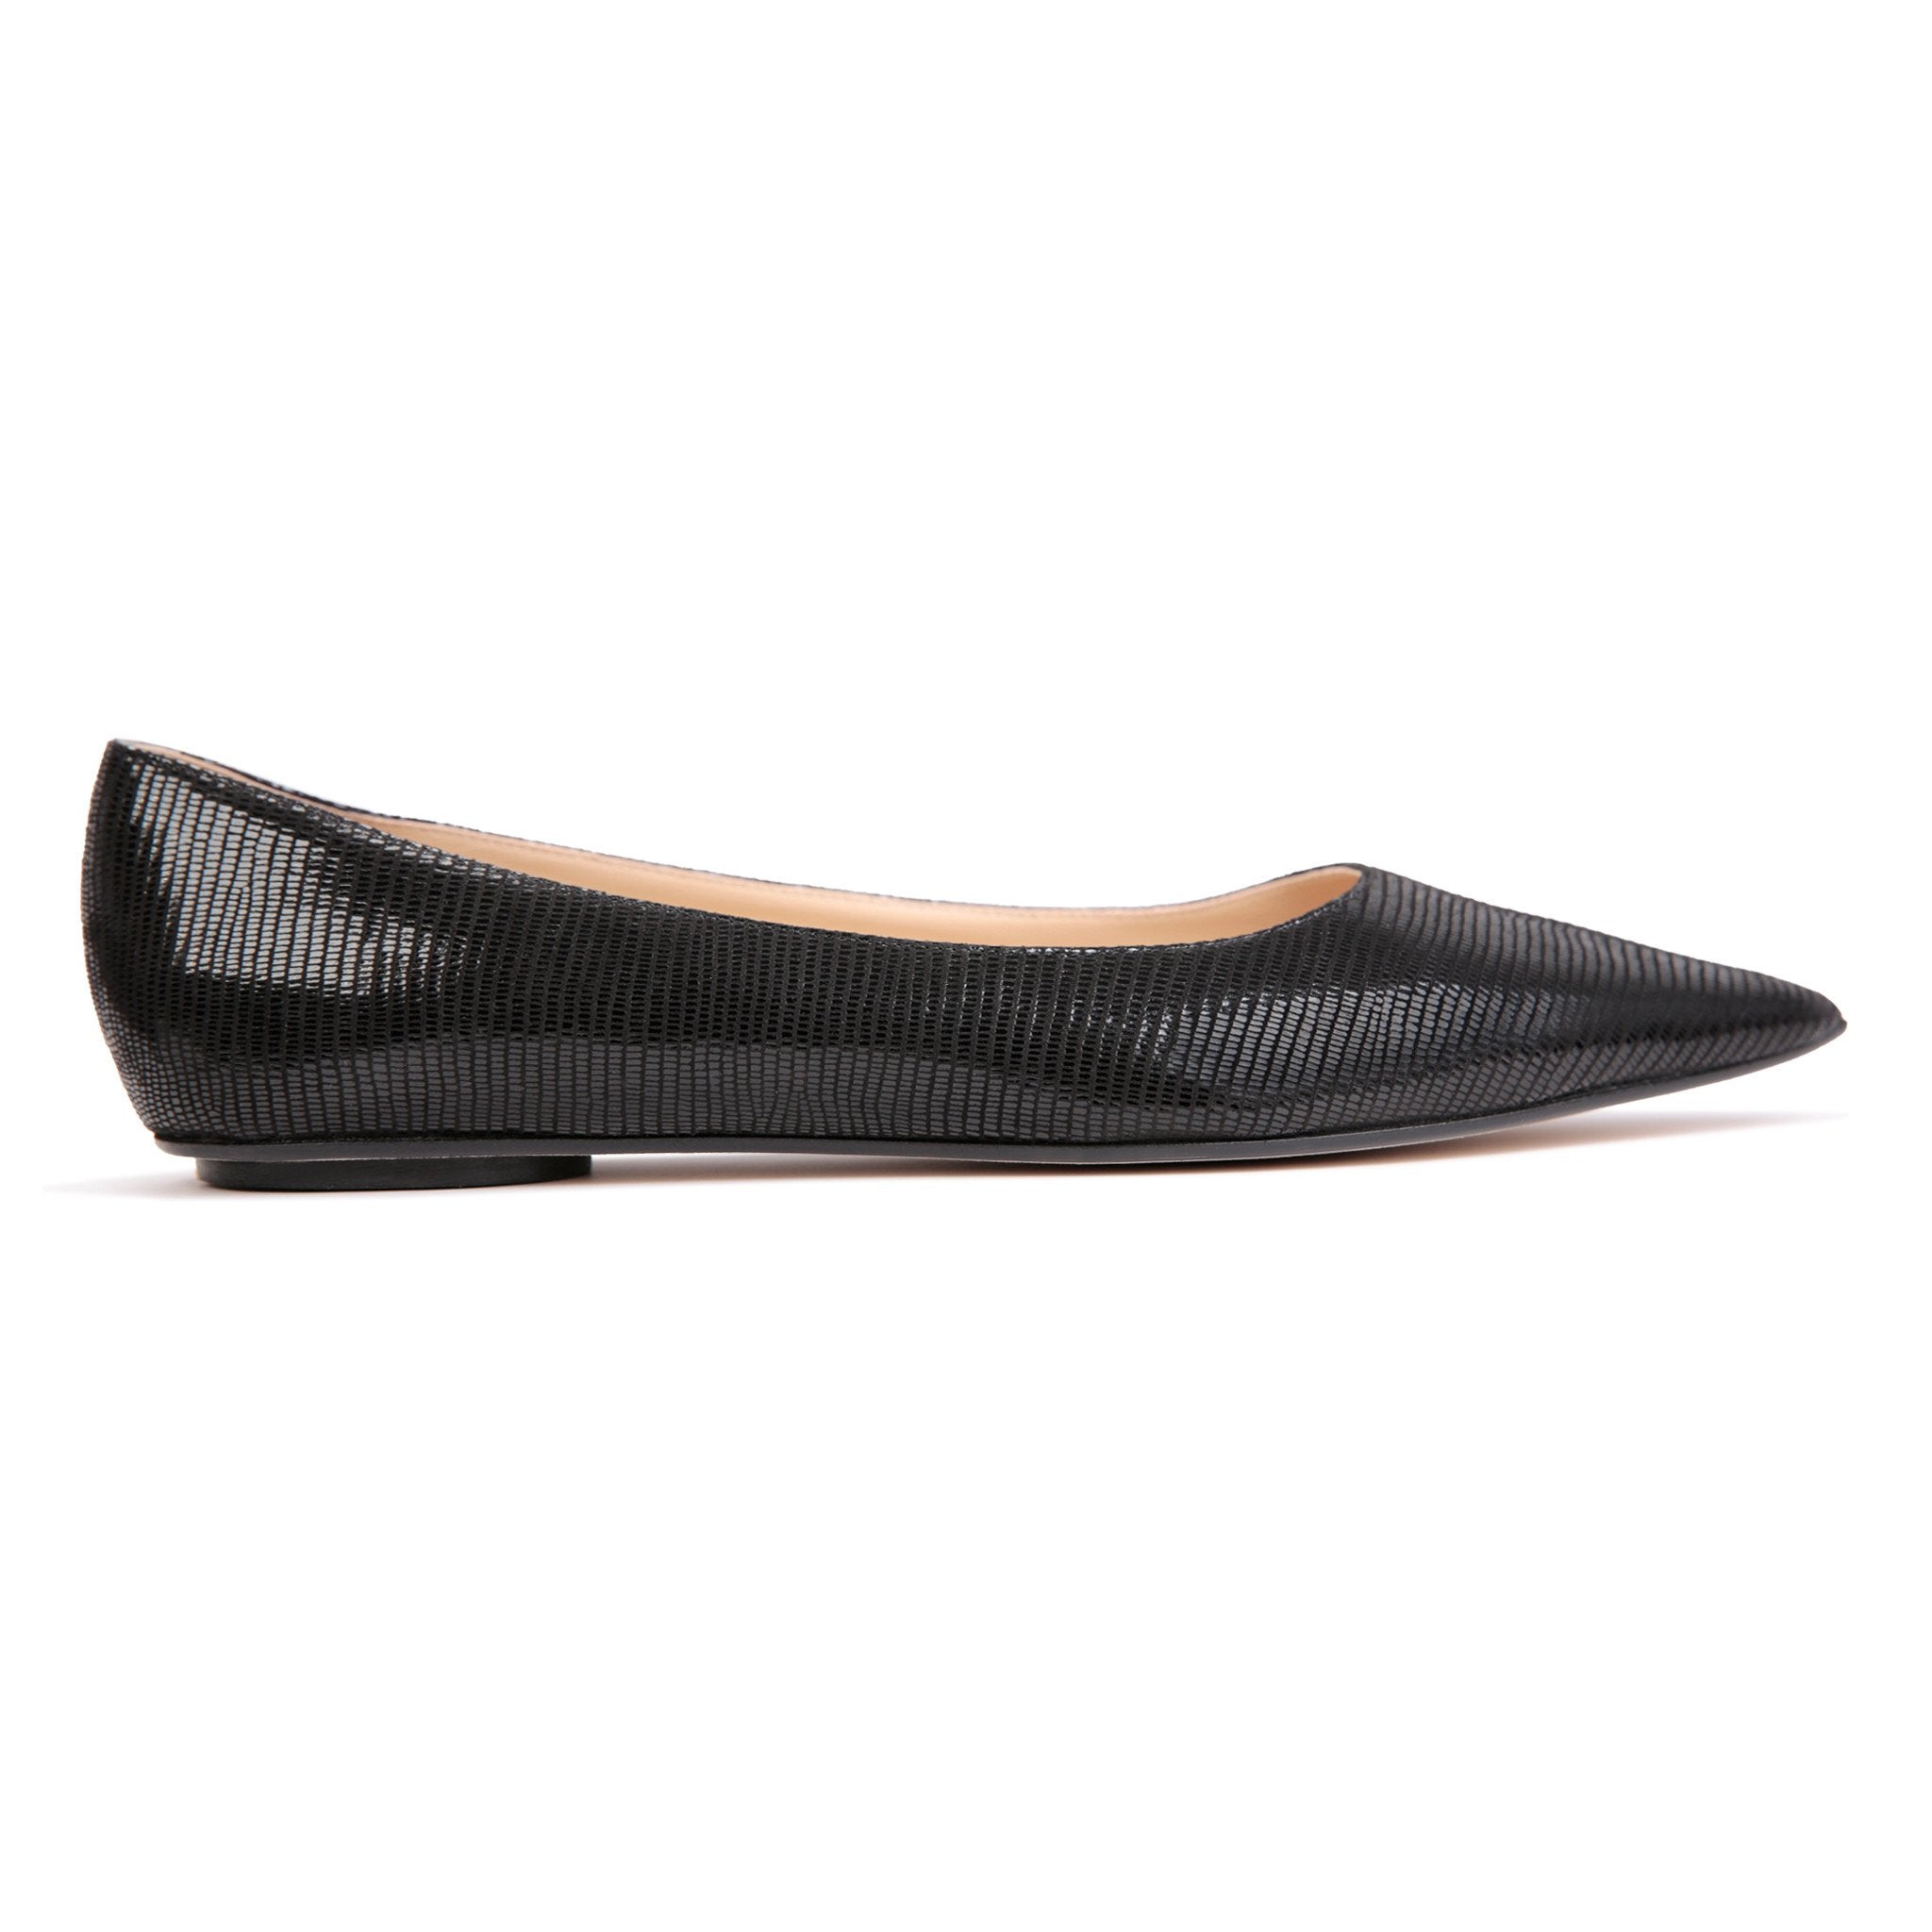 COMO - Varanus Nero, VIAJIYU - Women's Hand Made Sustainable Luxury Shoes. Made in Italy. Made to Order.